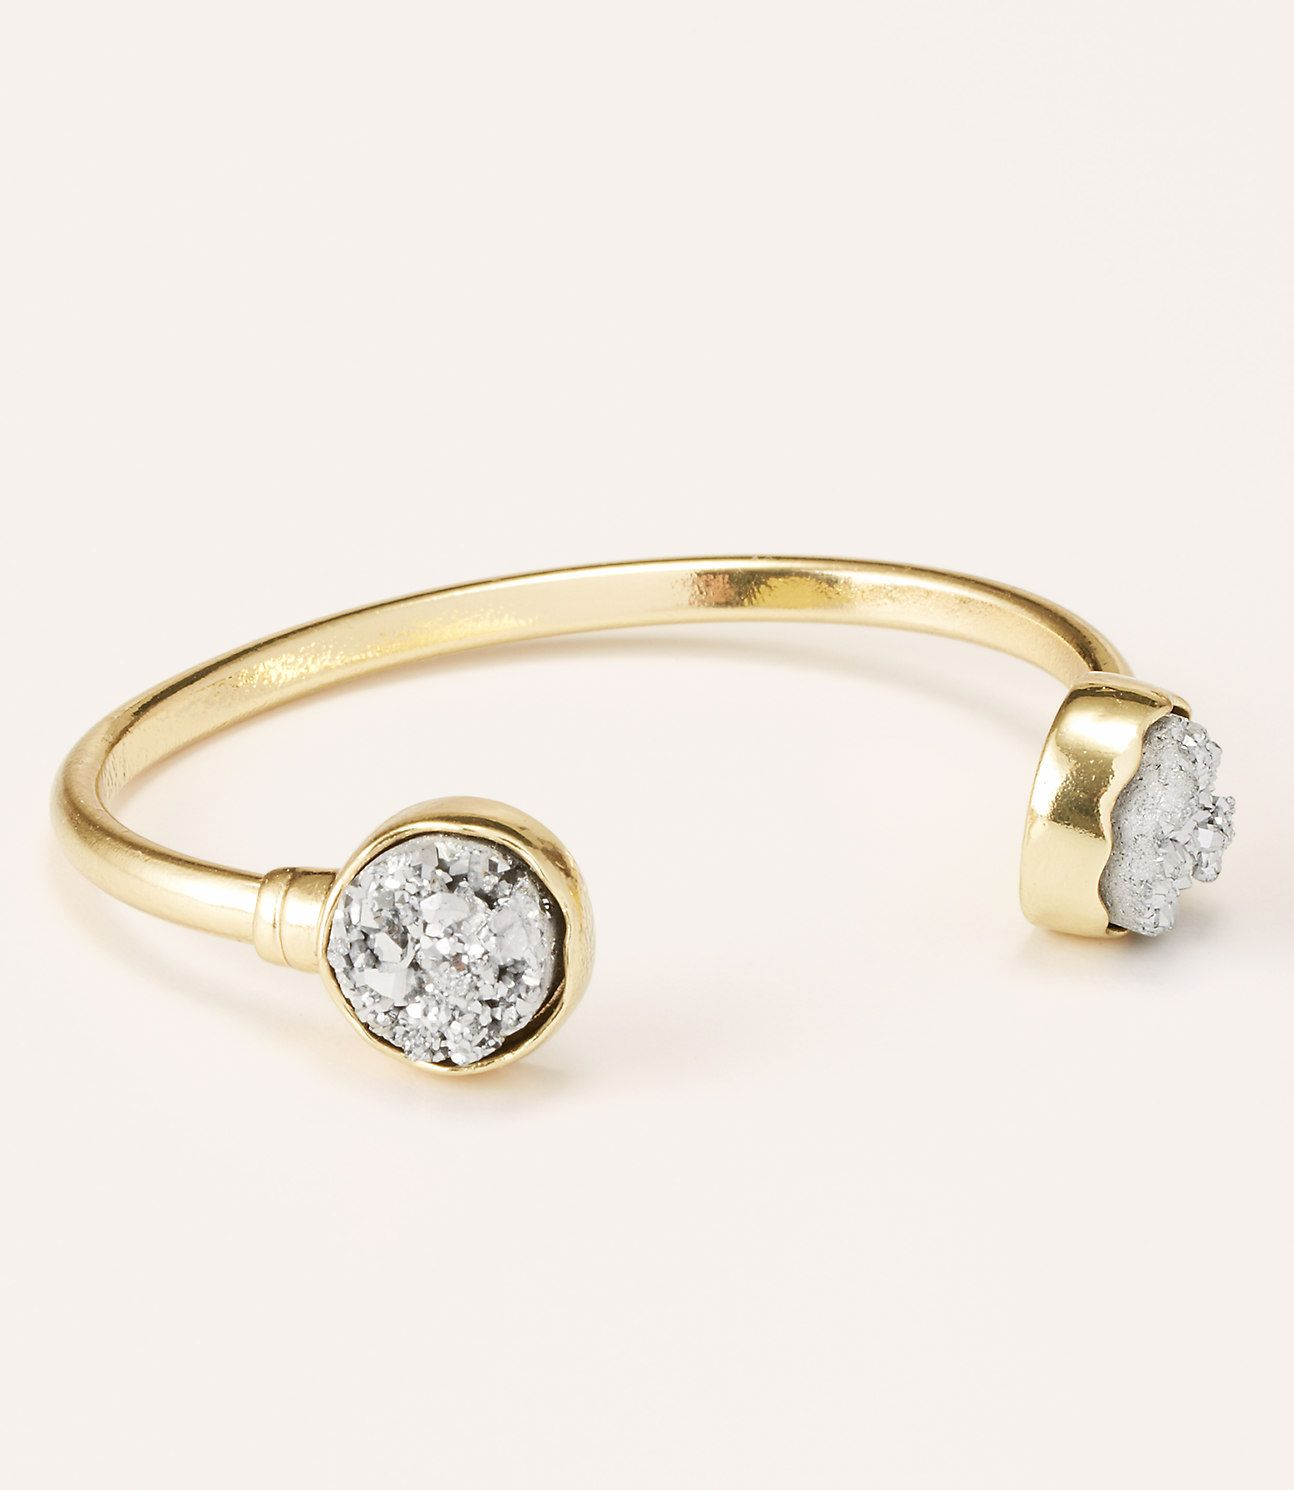 Primary Image of Open Bangle Bracelet